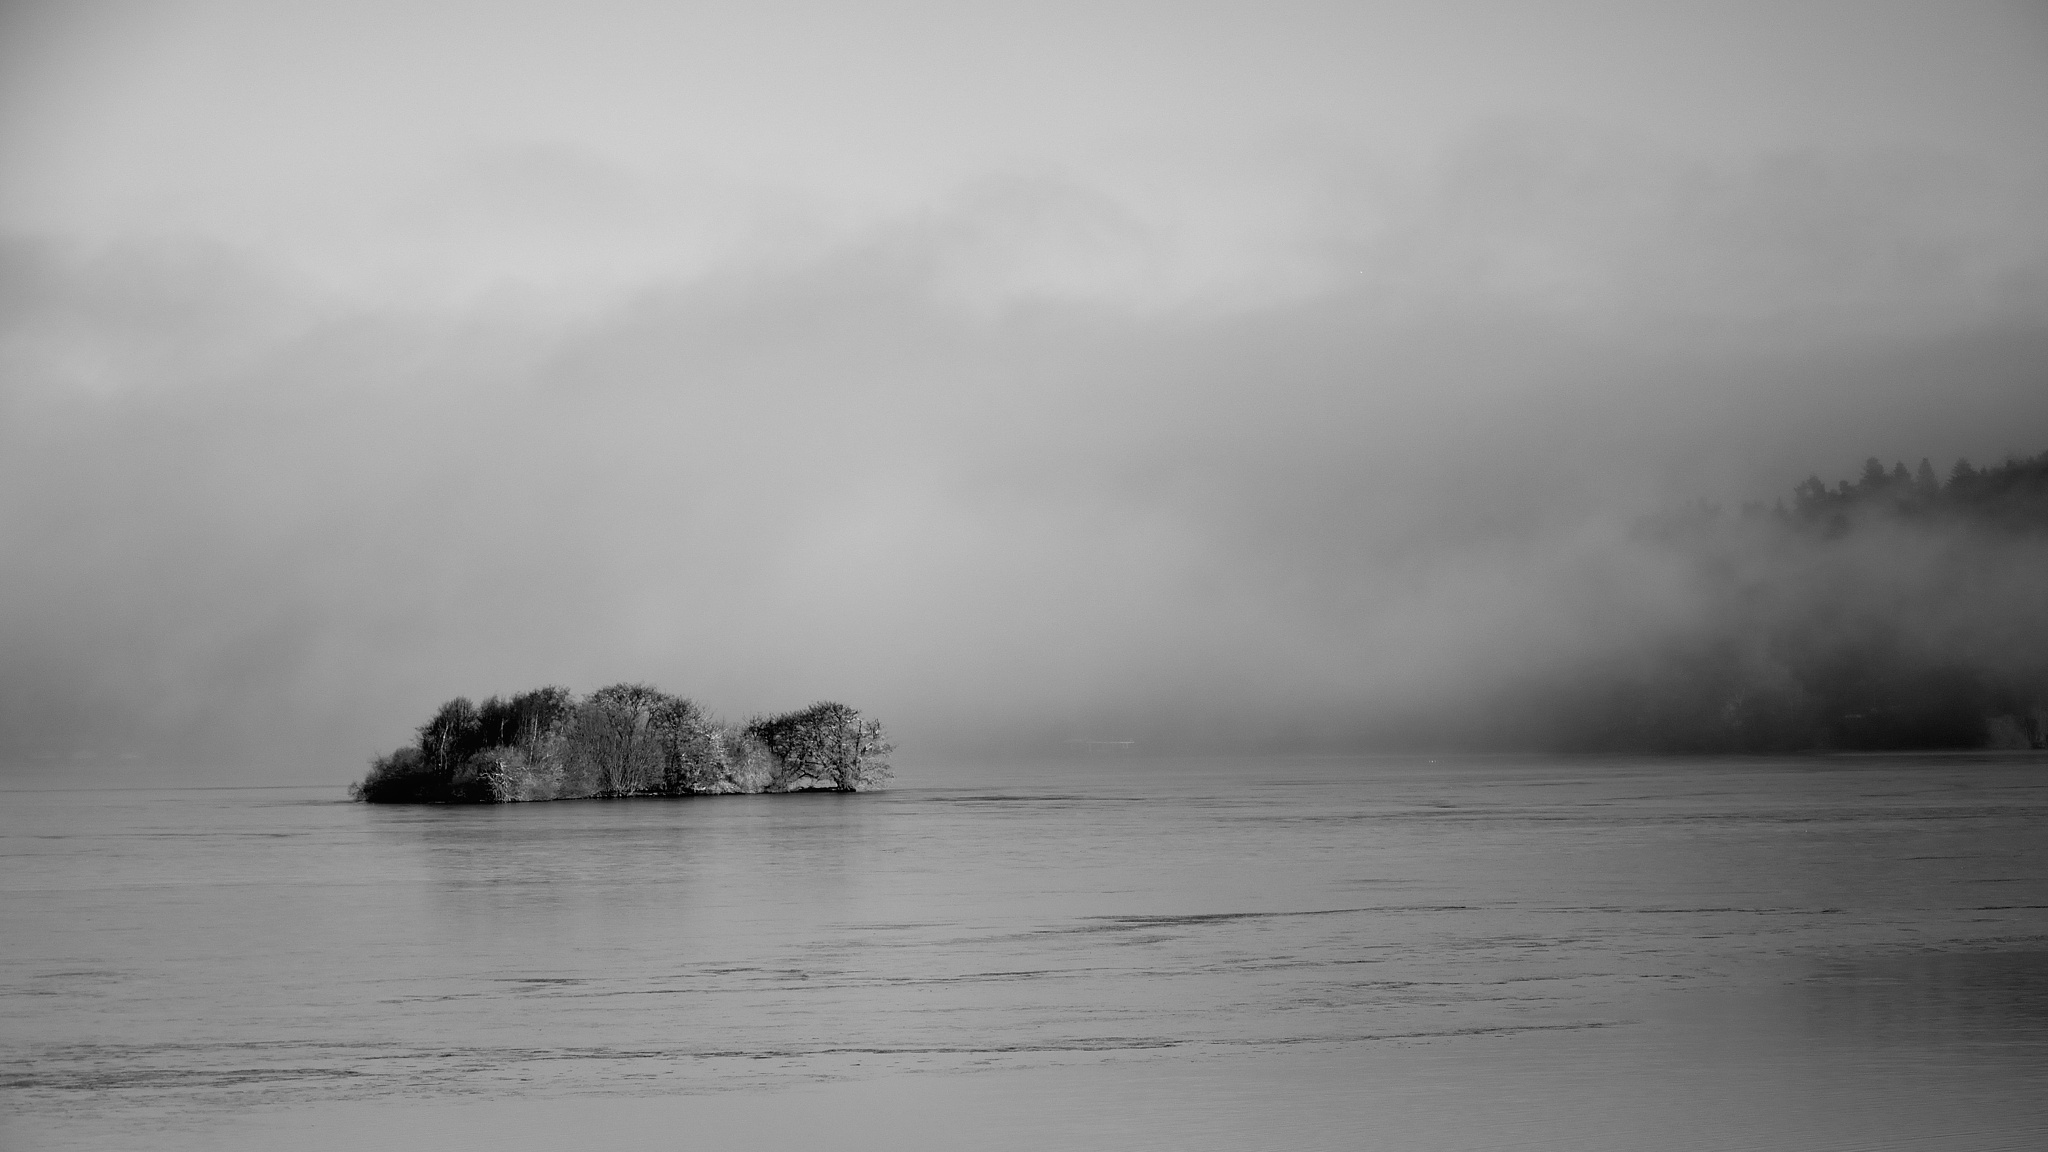 mist over the lake by Poul-Erik Riis